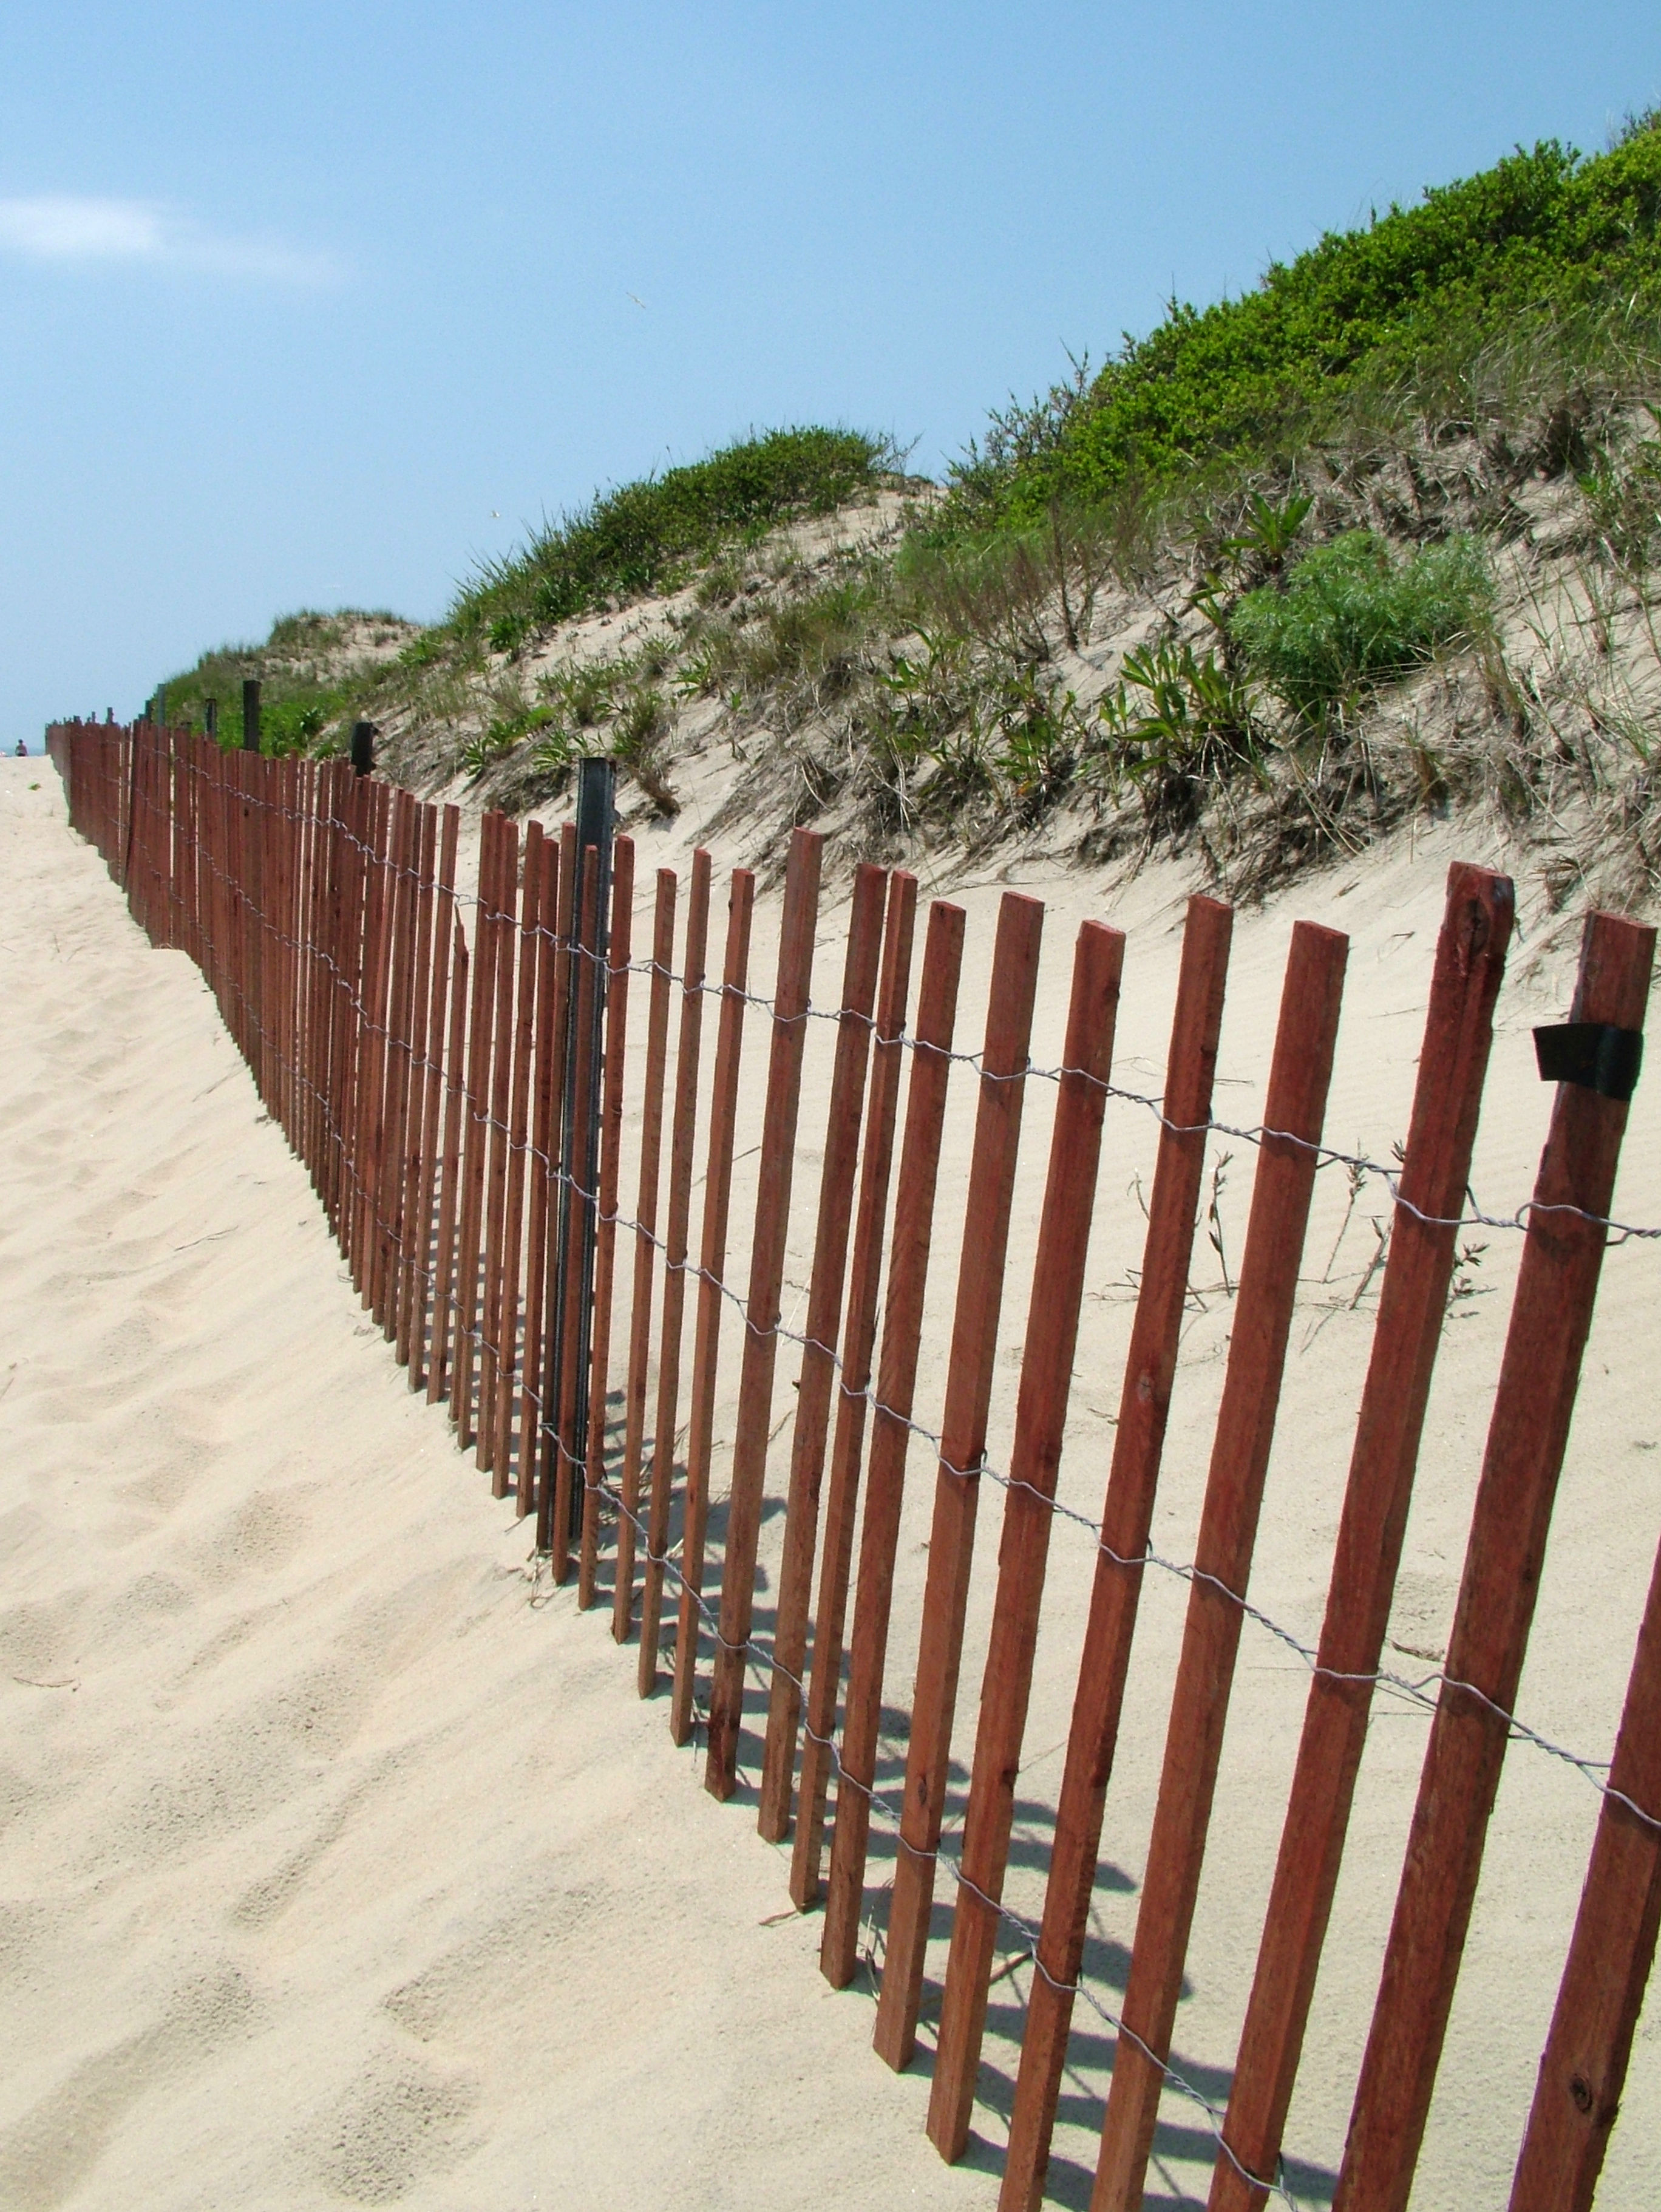 Executive Order Will Expedite Dune Construction